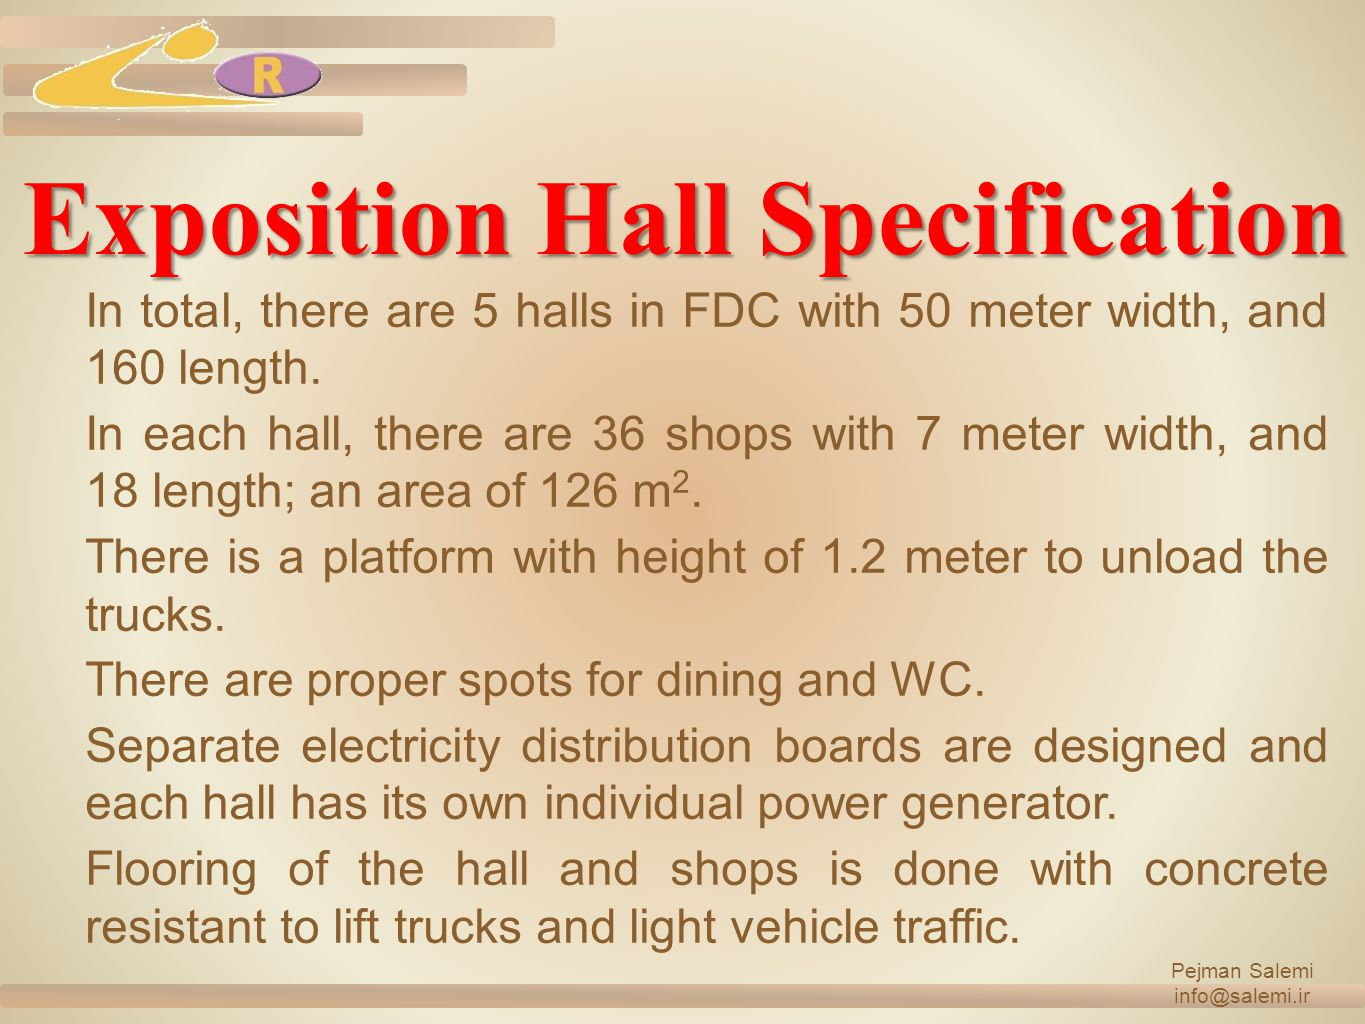 Exposition Hall Specification In total, there are 5 halls in FDC with 50 meter width, and 160 length.